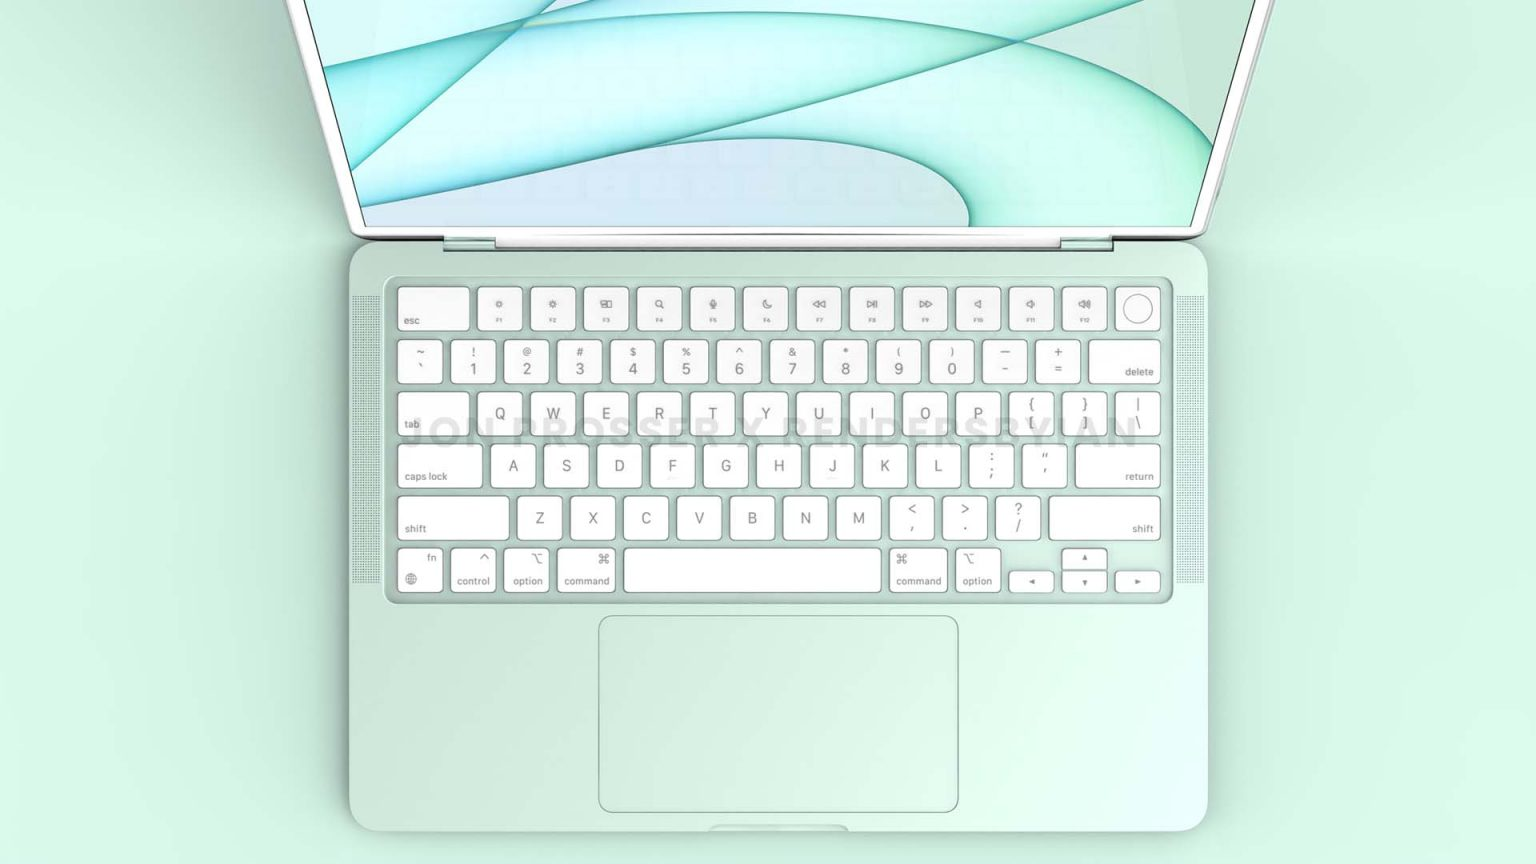 Apple reportedly plans to release new laptops in colors that match the iMac lineup.